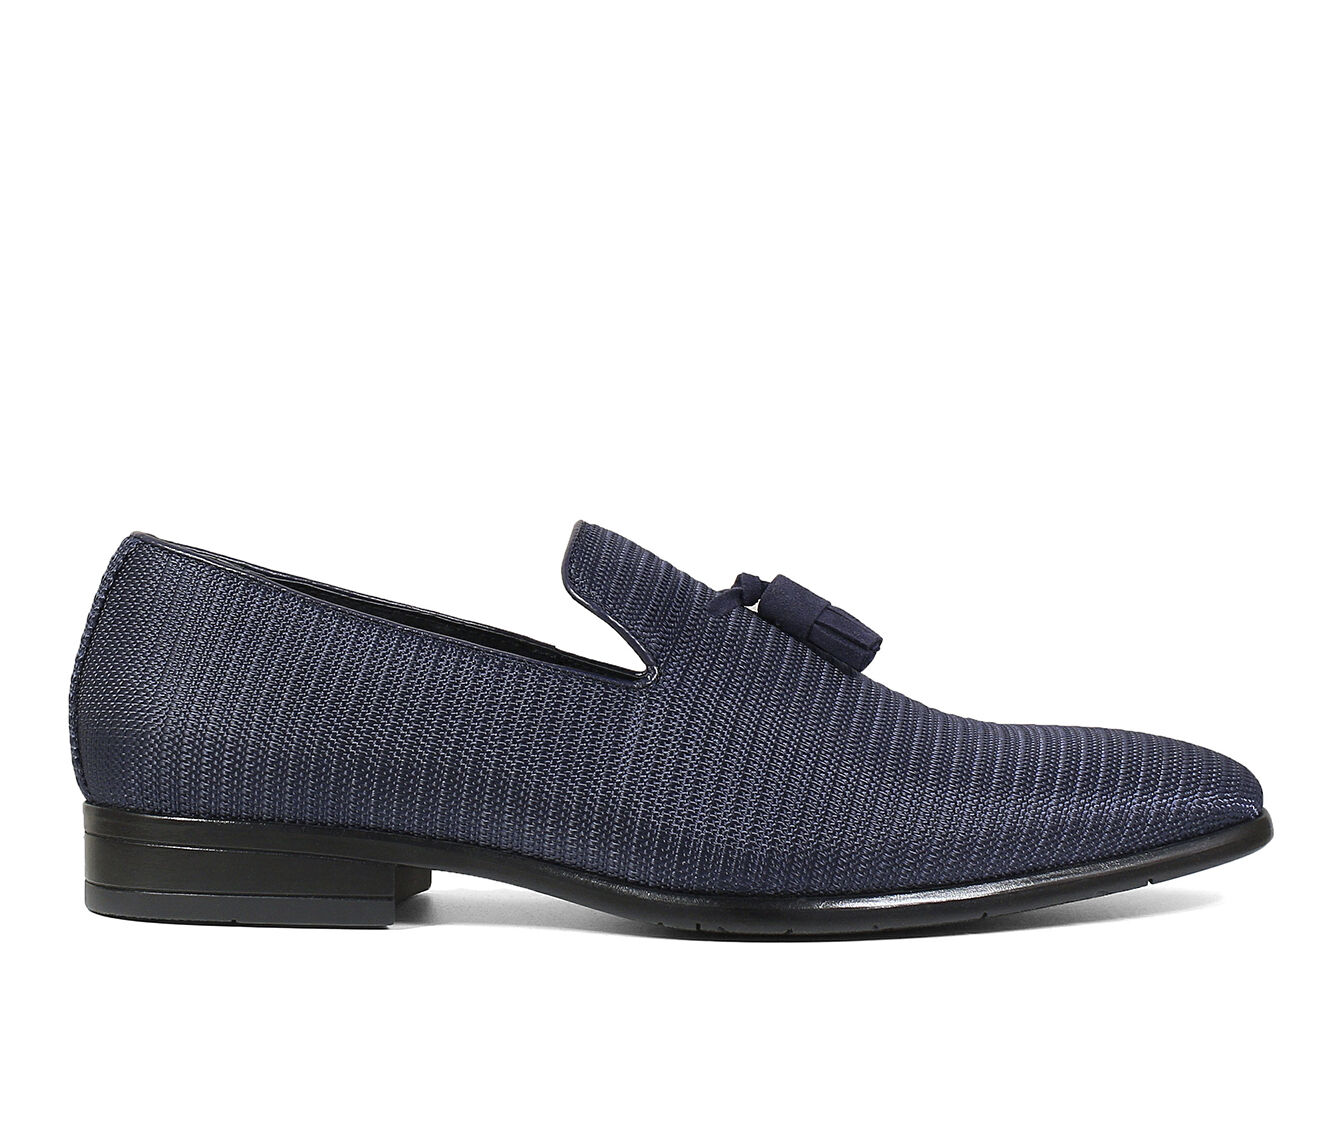 Greate Discount Men's Stacy Adams Tazewell Dress Shoes Navy